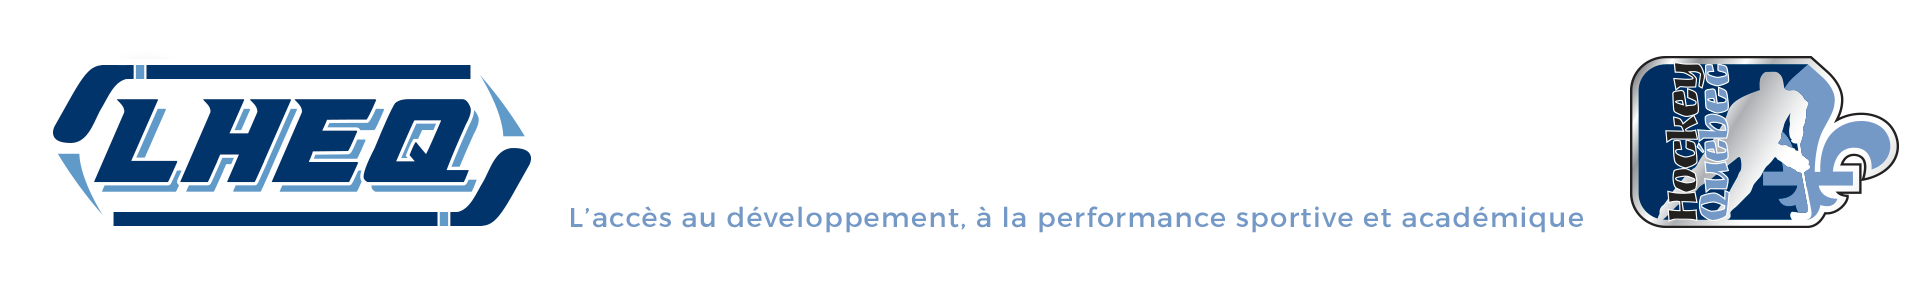 Ligue de Hockey d'Excellence du Québec